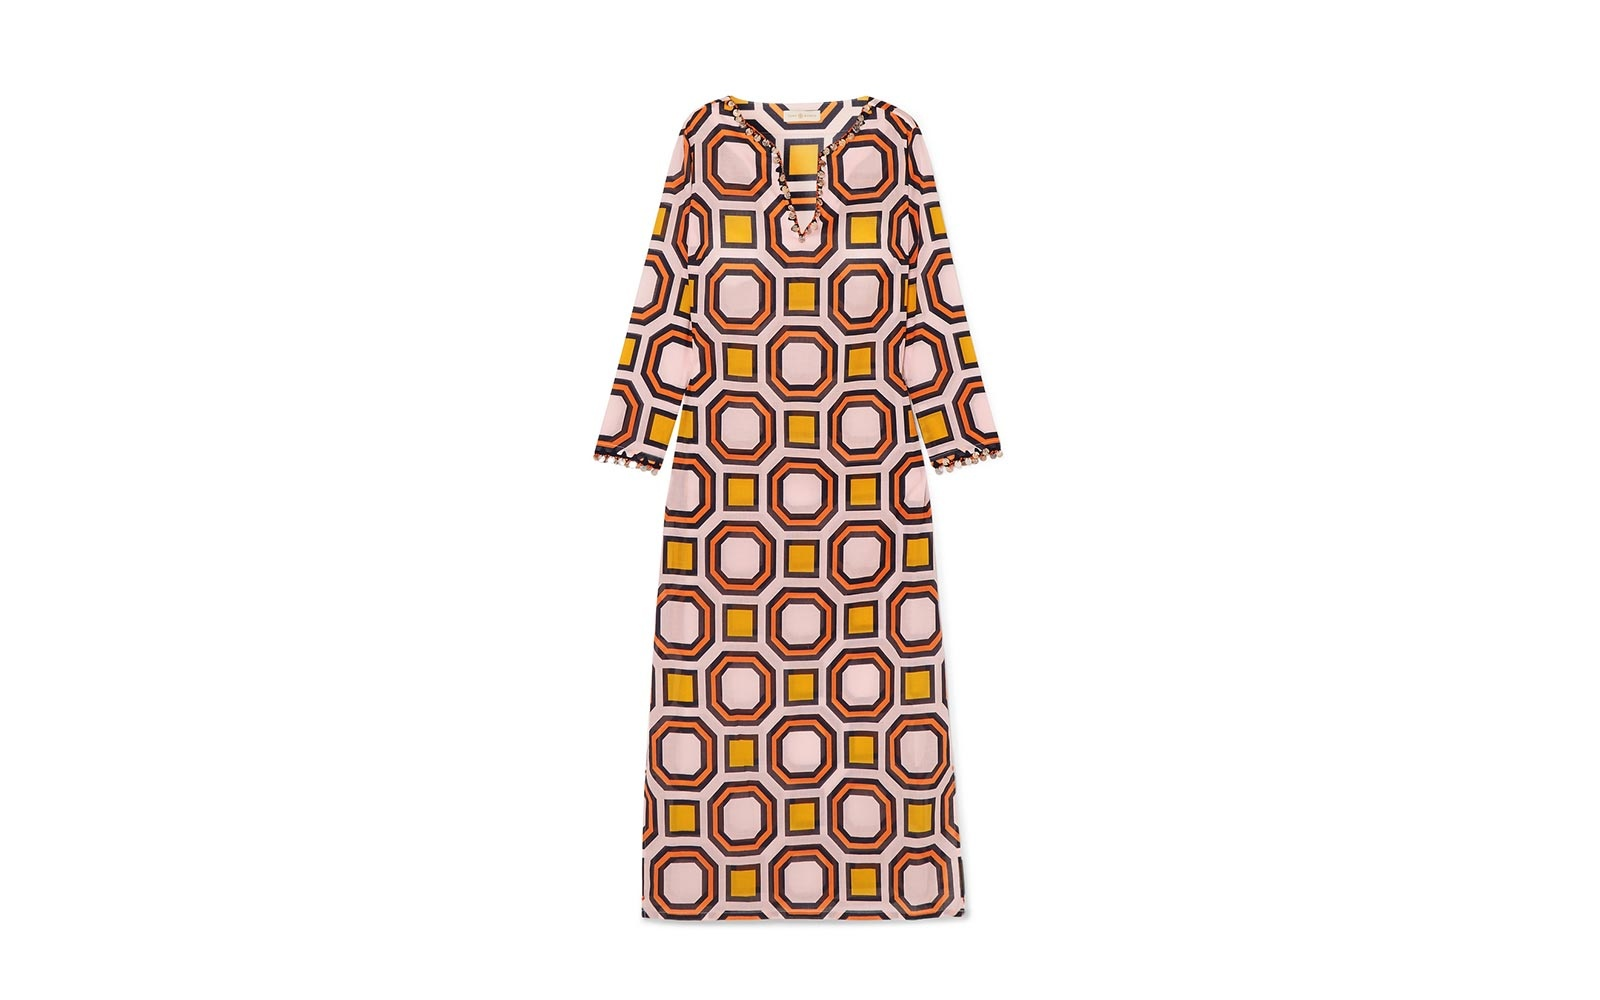 f23e6a85ab Tory Burch geo embellished printed cotton voile kaftan. Tory Burch caftan  dress